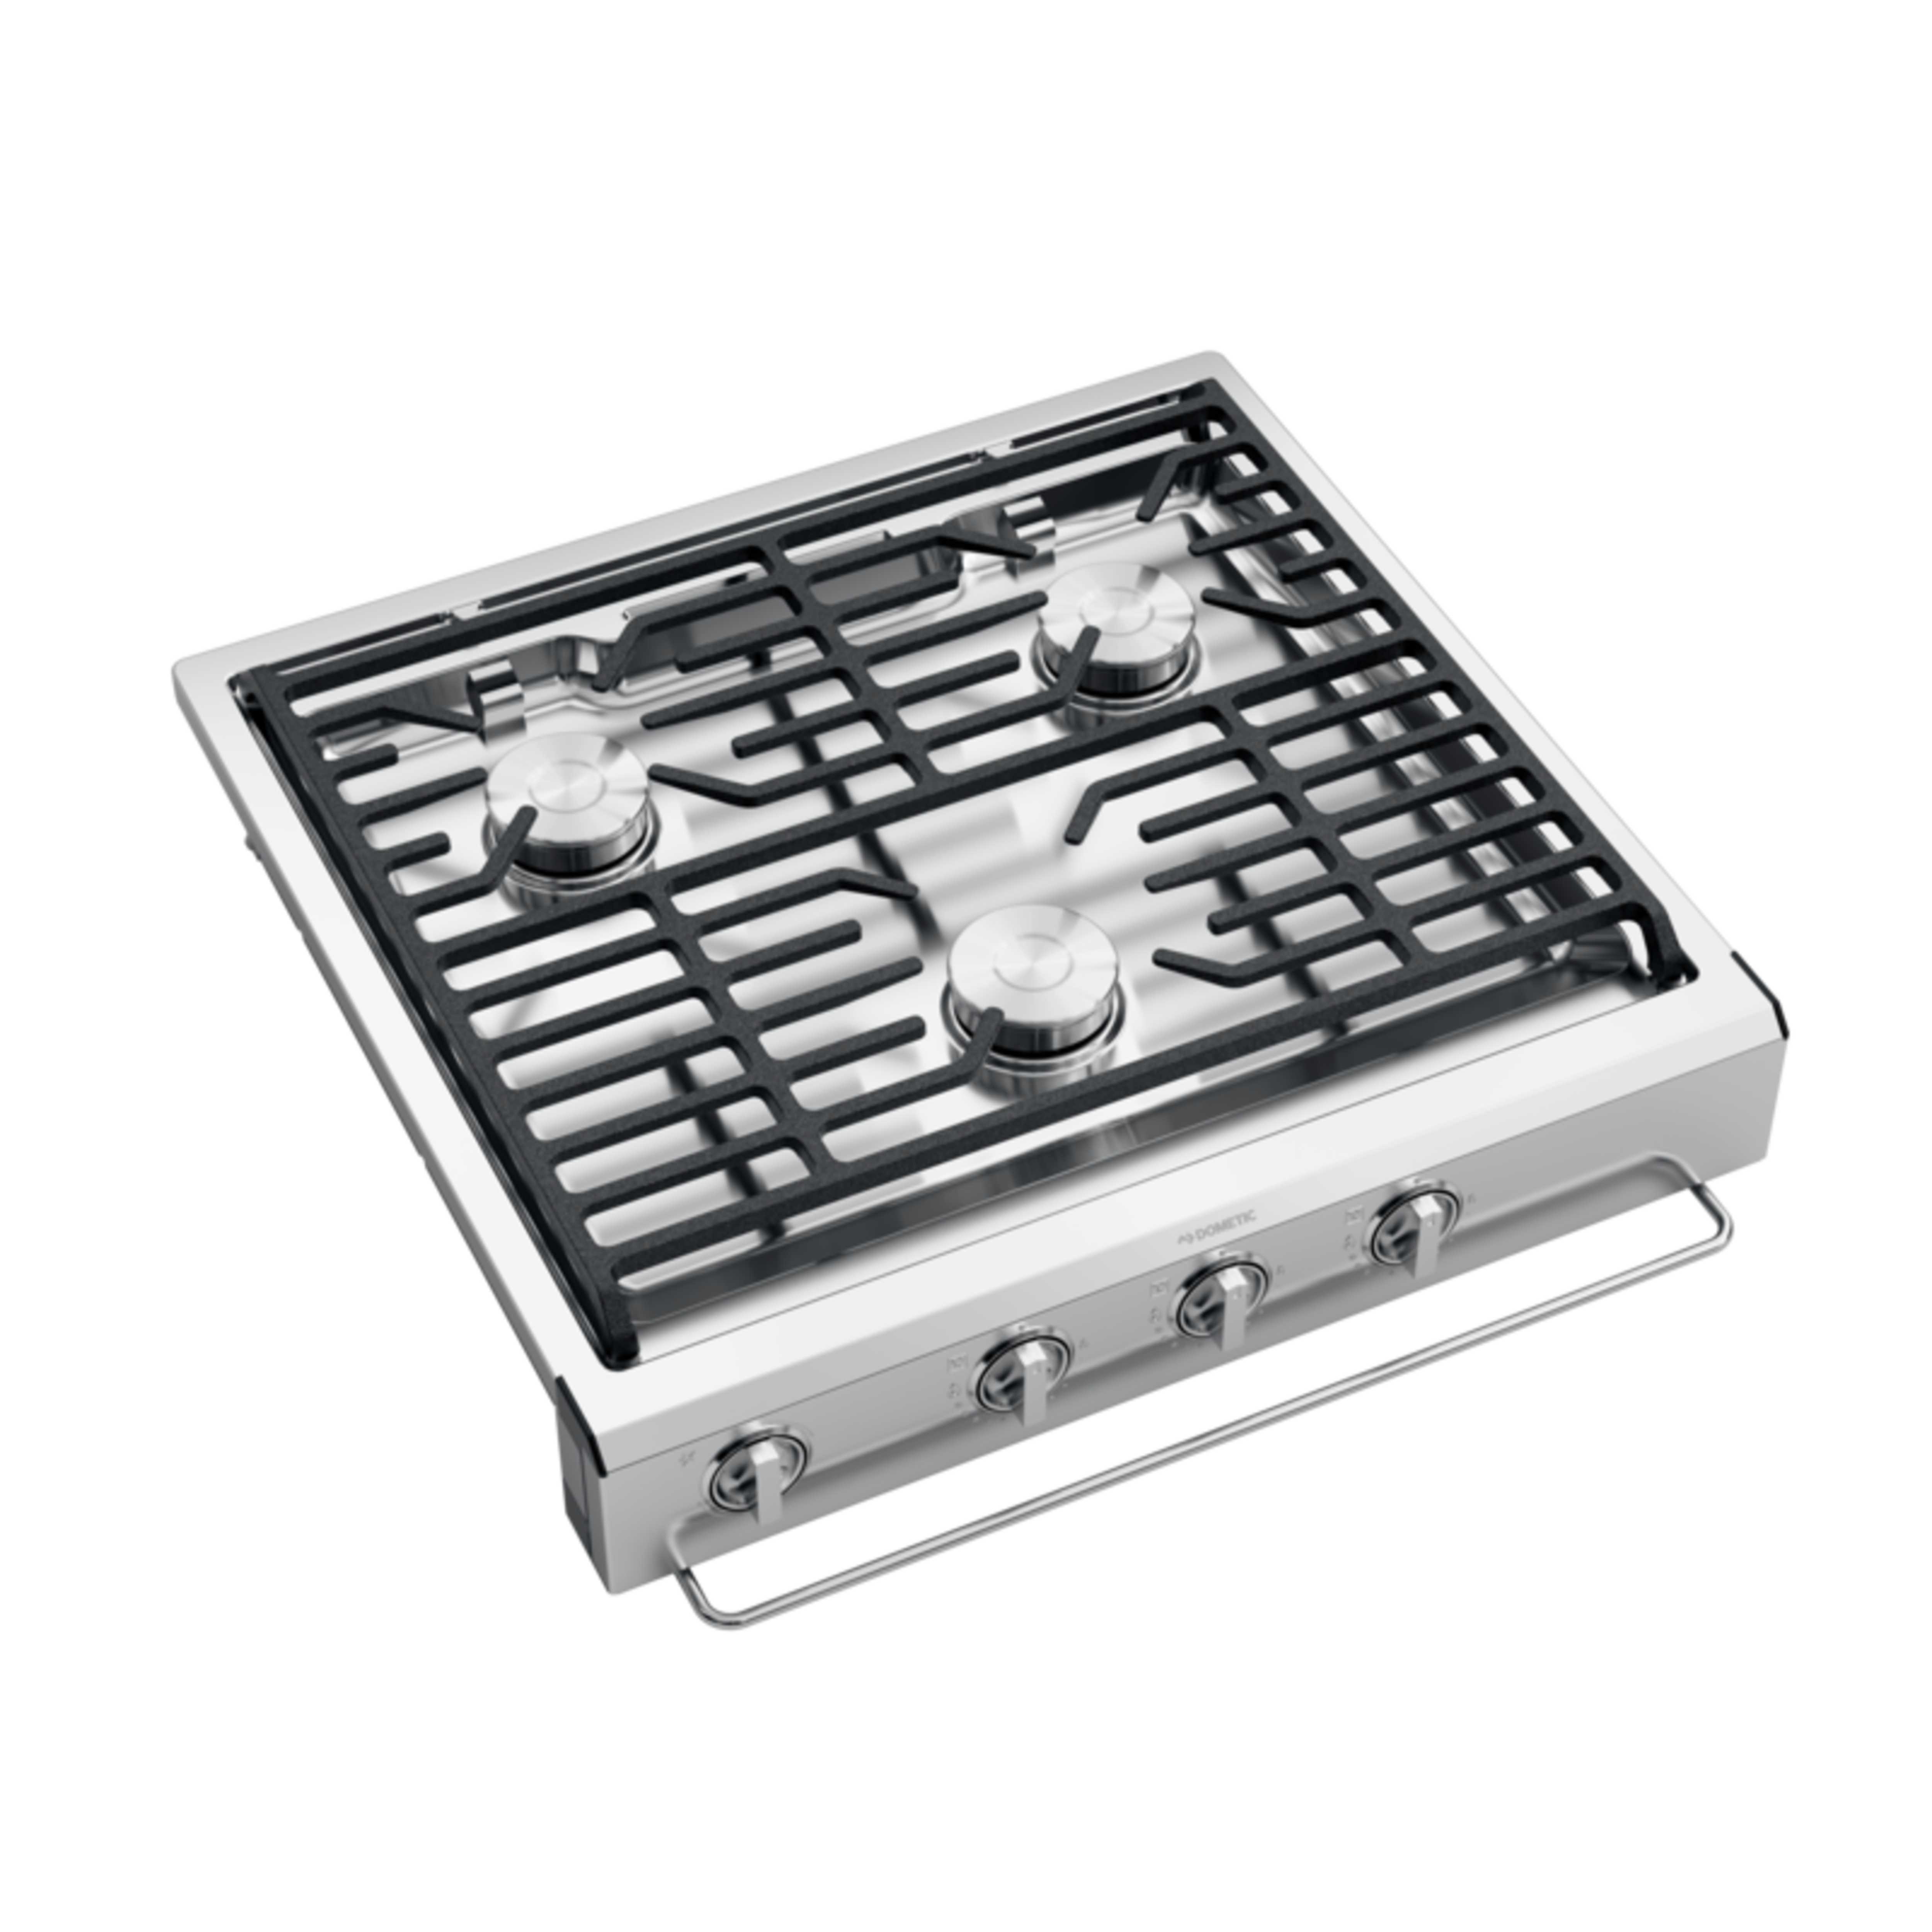 Dometic Slide-In Cooktop